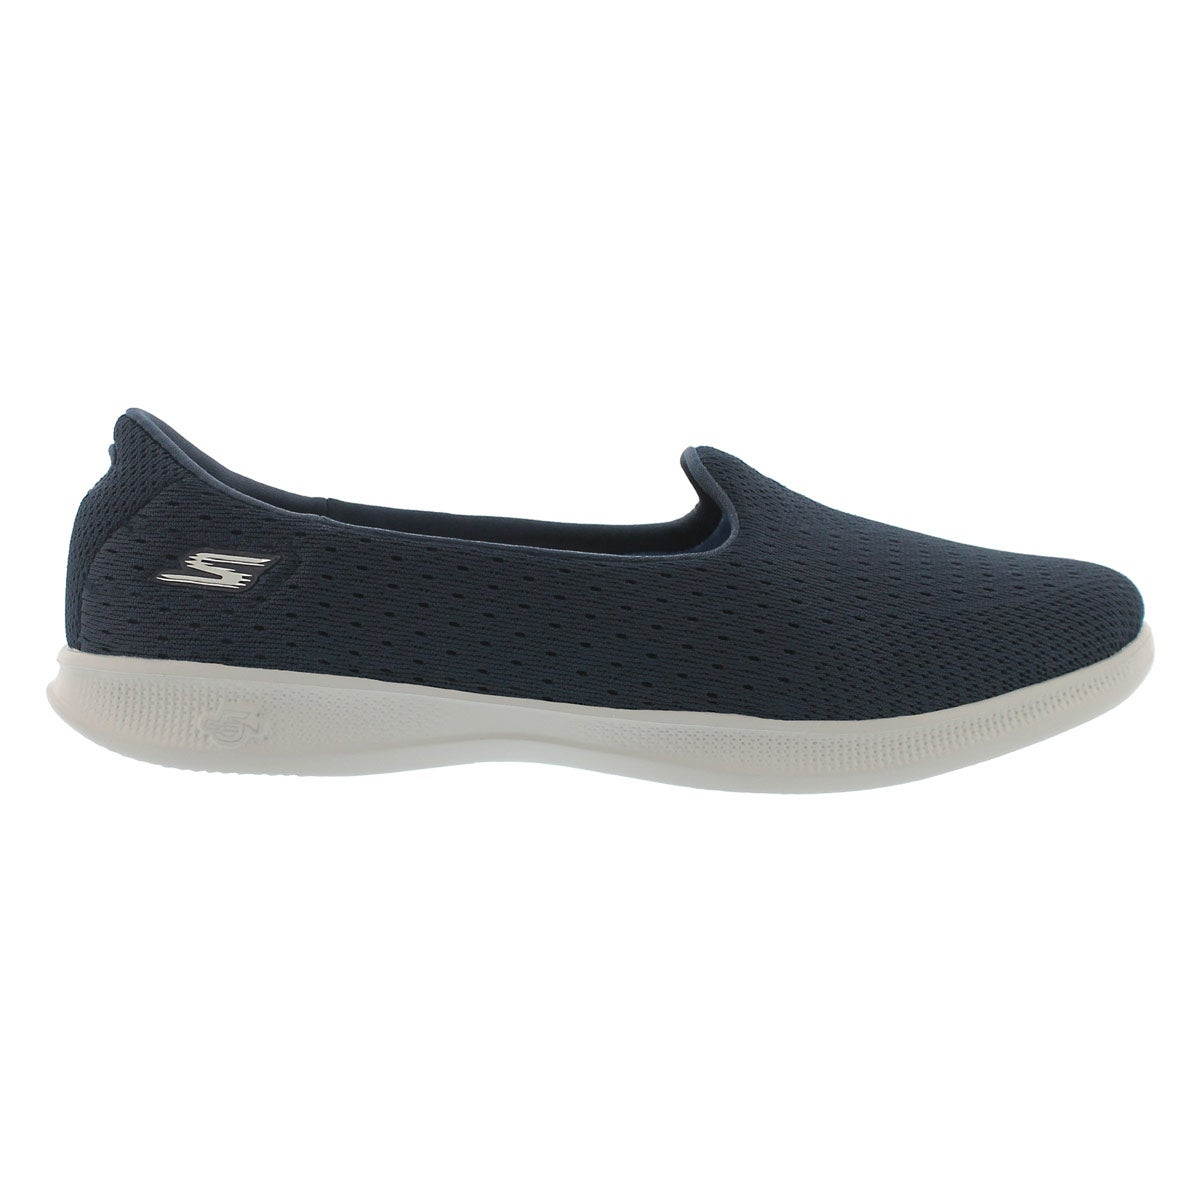 Lds GO Step Lite Origin nvy walking shoe